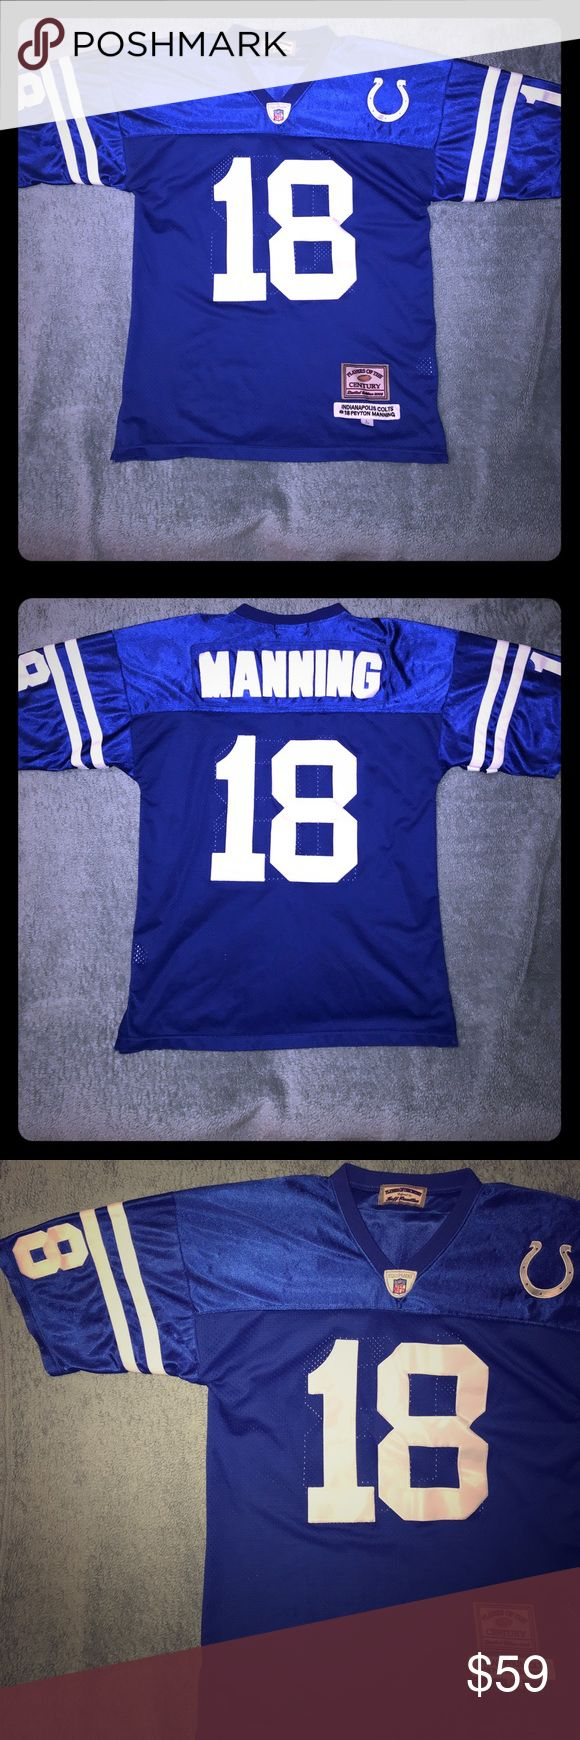 """Peyton Manning Indianapolis Colts """"Century"""" Jersey For sale is a quarterback Peyton Manning Indianapolis Colts #18 Jersey. This jersey is part of the """"Players of the Century"""" series produced by Jeff Hamilton from 2004. Limited item and production. All letters, numbers and logos are sewn. As close to custom design as they come! Jersey is a Size 50, Large, and in excellent used condition with minimal fabric wear, and no rips, tears or stains. Jeff Hamilton Shirts Tees - Short Sleeve"""